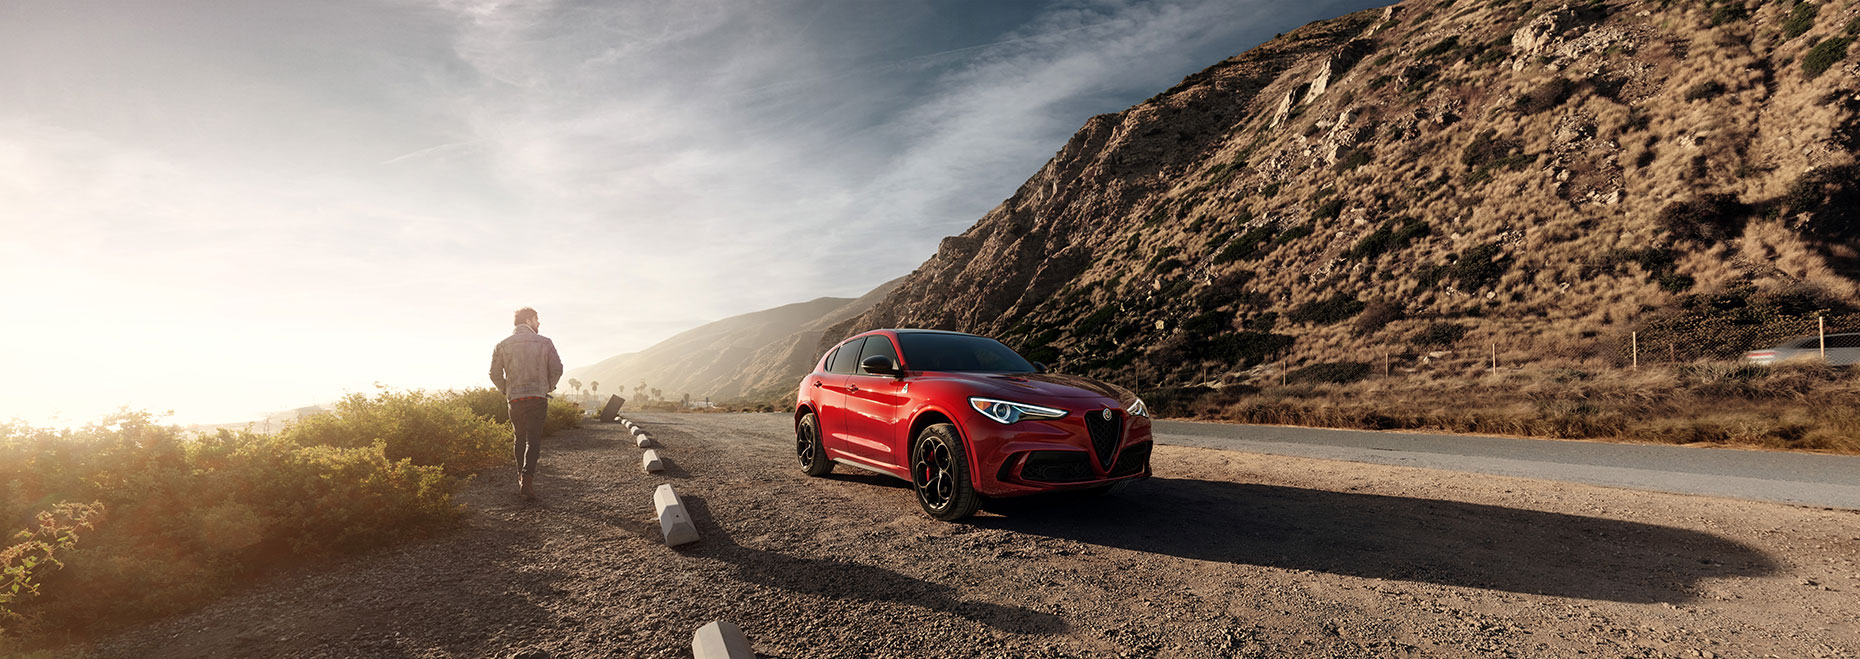 Alfa_Romeo_Point_Mugu_Stelvio_EXT_Wide_4851_COMP_v1